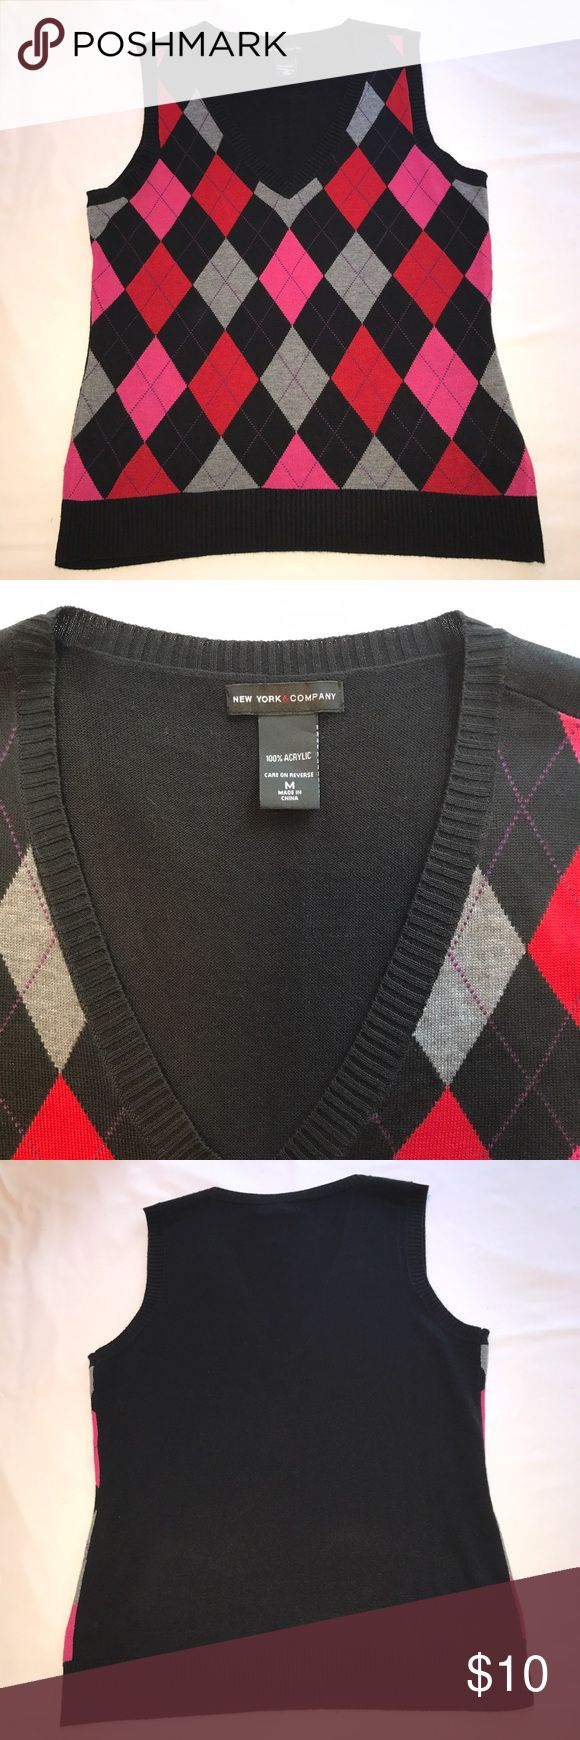 """Argyle NY & Co Sweater Vest Cute and comfy argyle sweater vest.   Pink, red, black, and gray diamonds with thin purple lines throughout.   Black back.  V-neck, excellent condition, 100% acrylic.  Armpit to armpit 18"""", length 24"""" flat. Made by New York & Company.   Size Medium New York & Company Tops"""